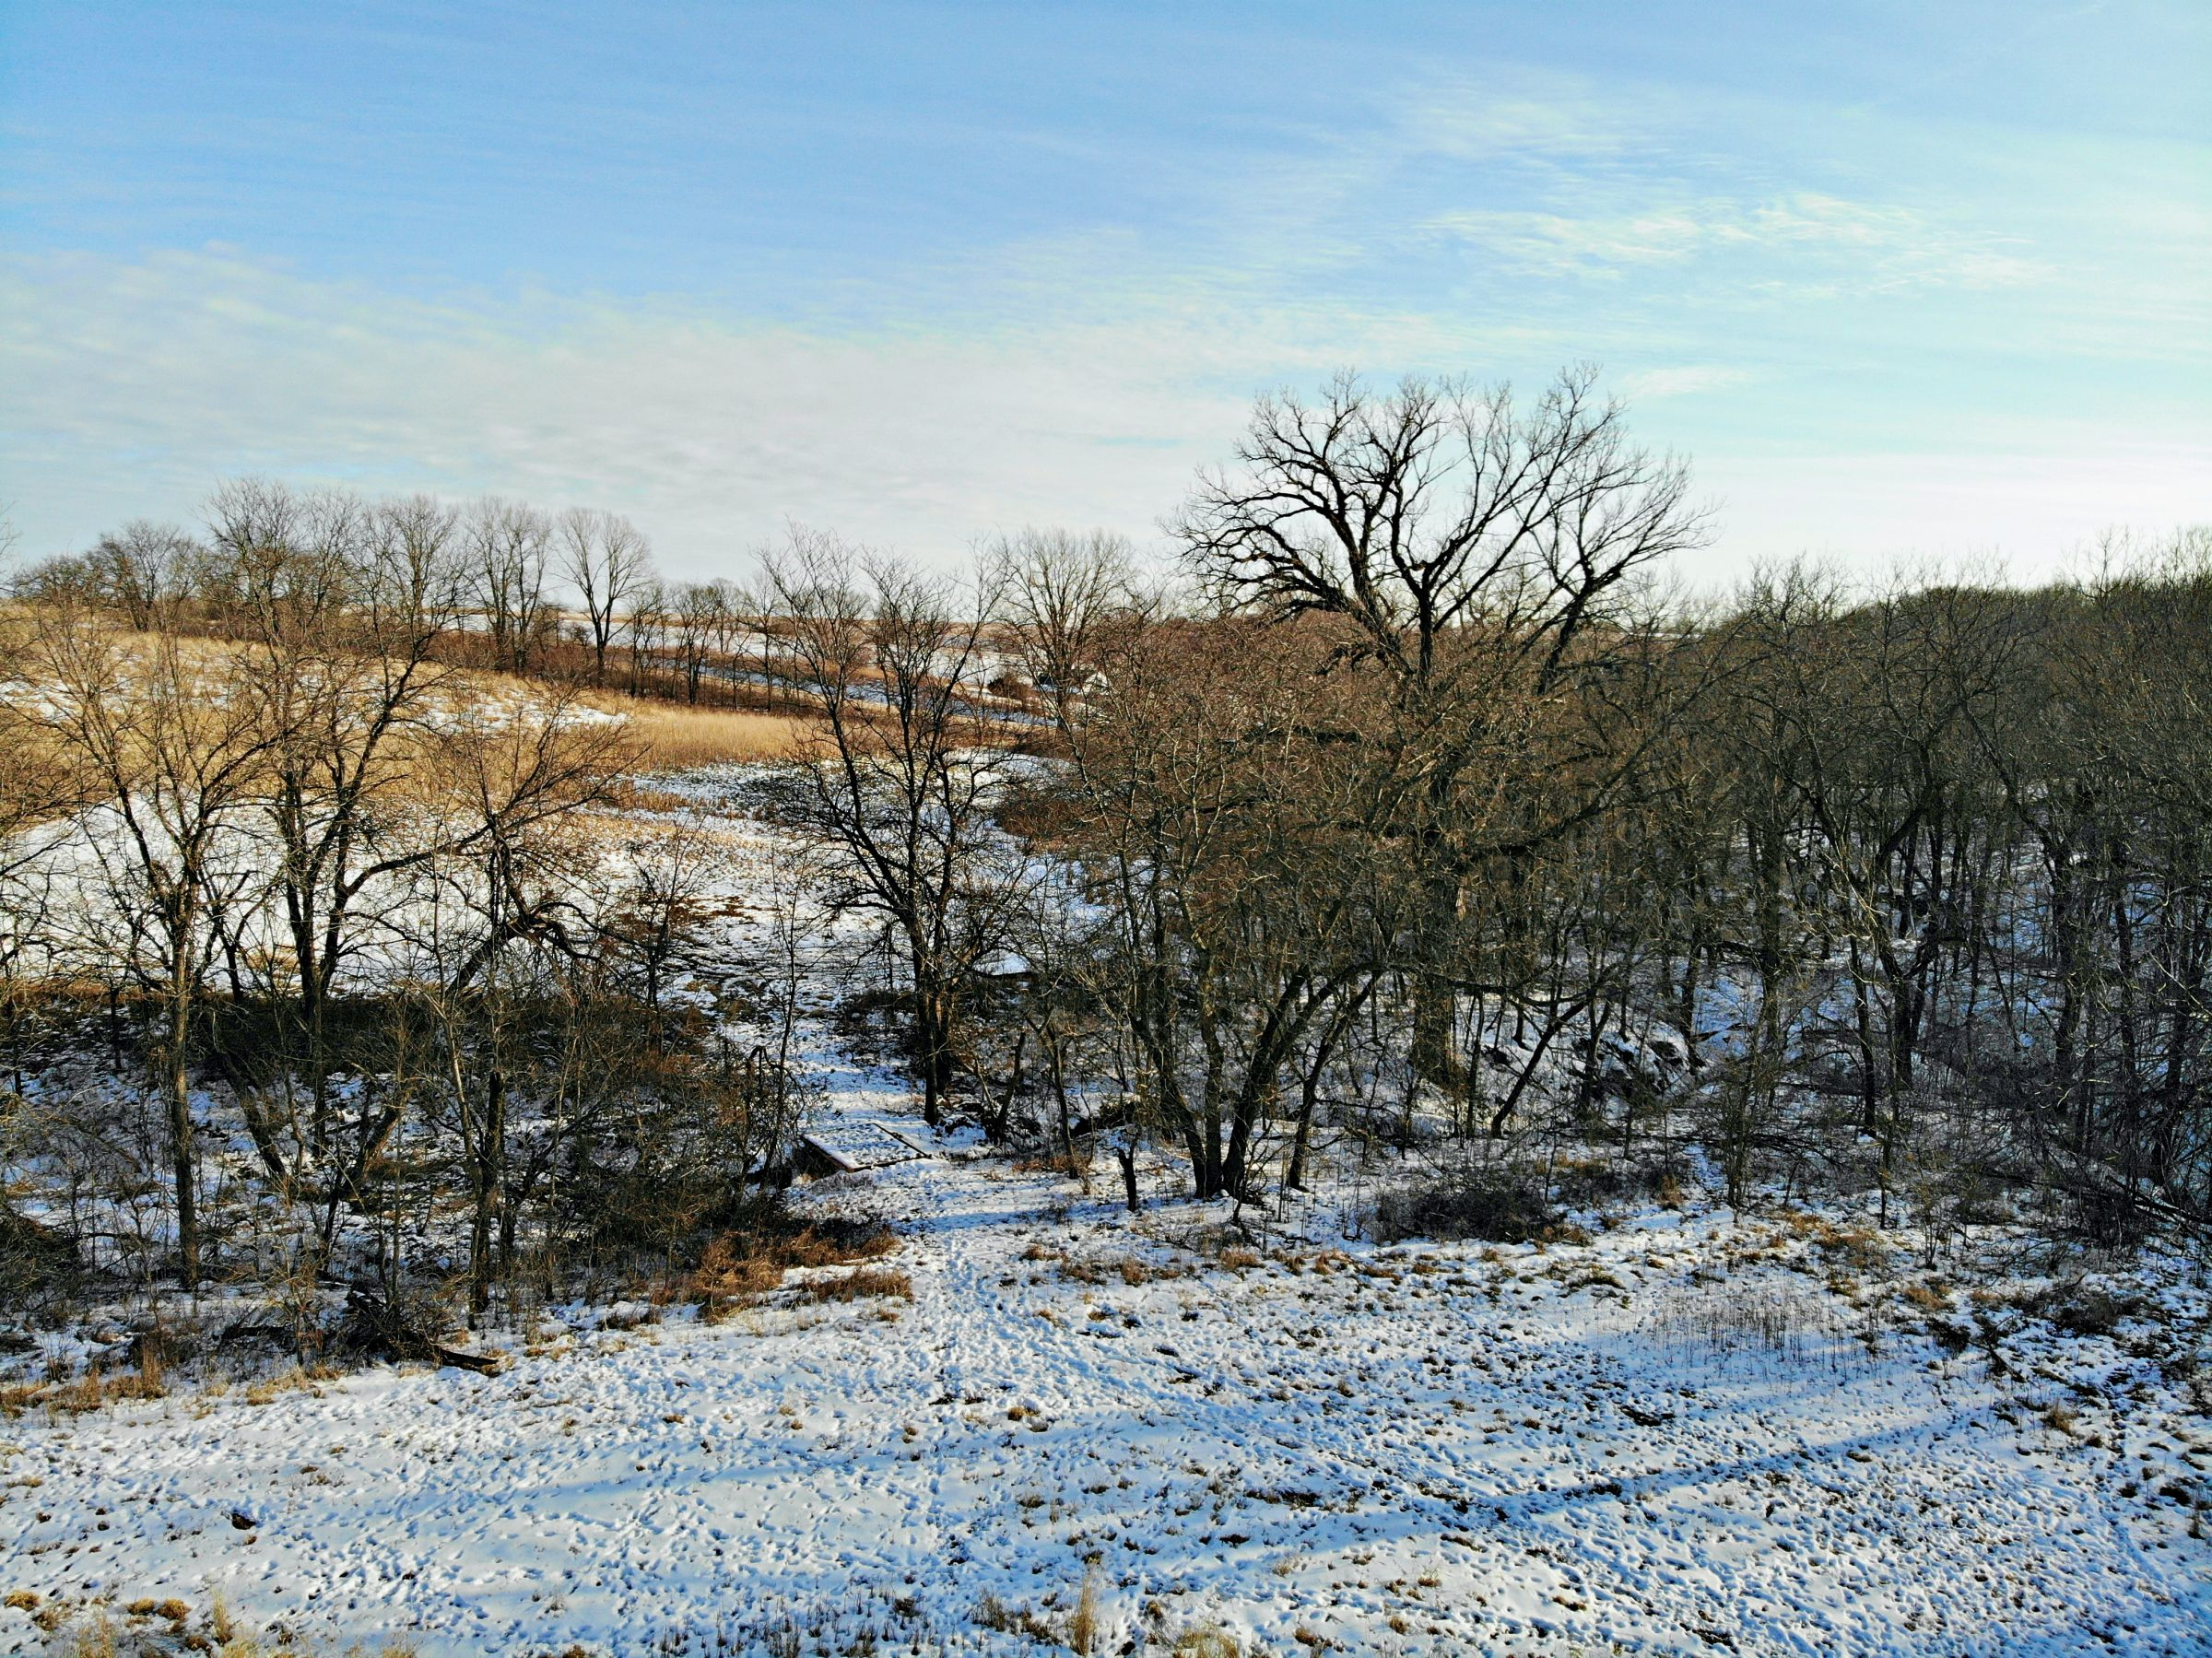 land-warren-county-iowa-21-acres-listing-number-15324-3-2021-01-18-024155.jpg